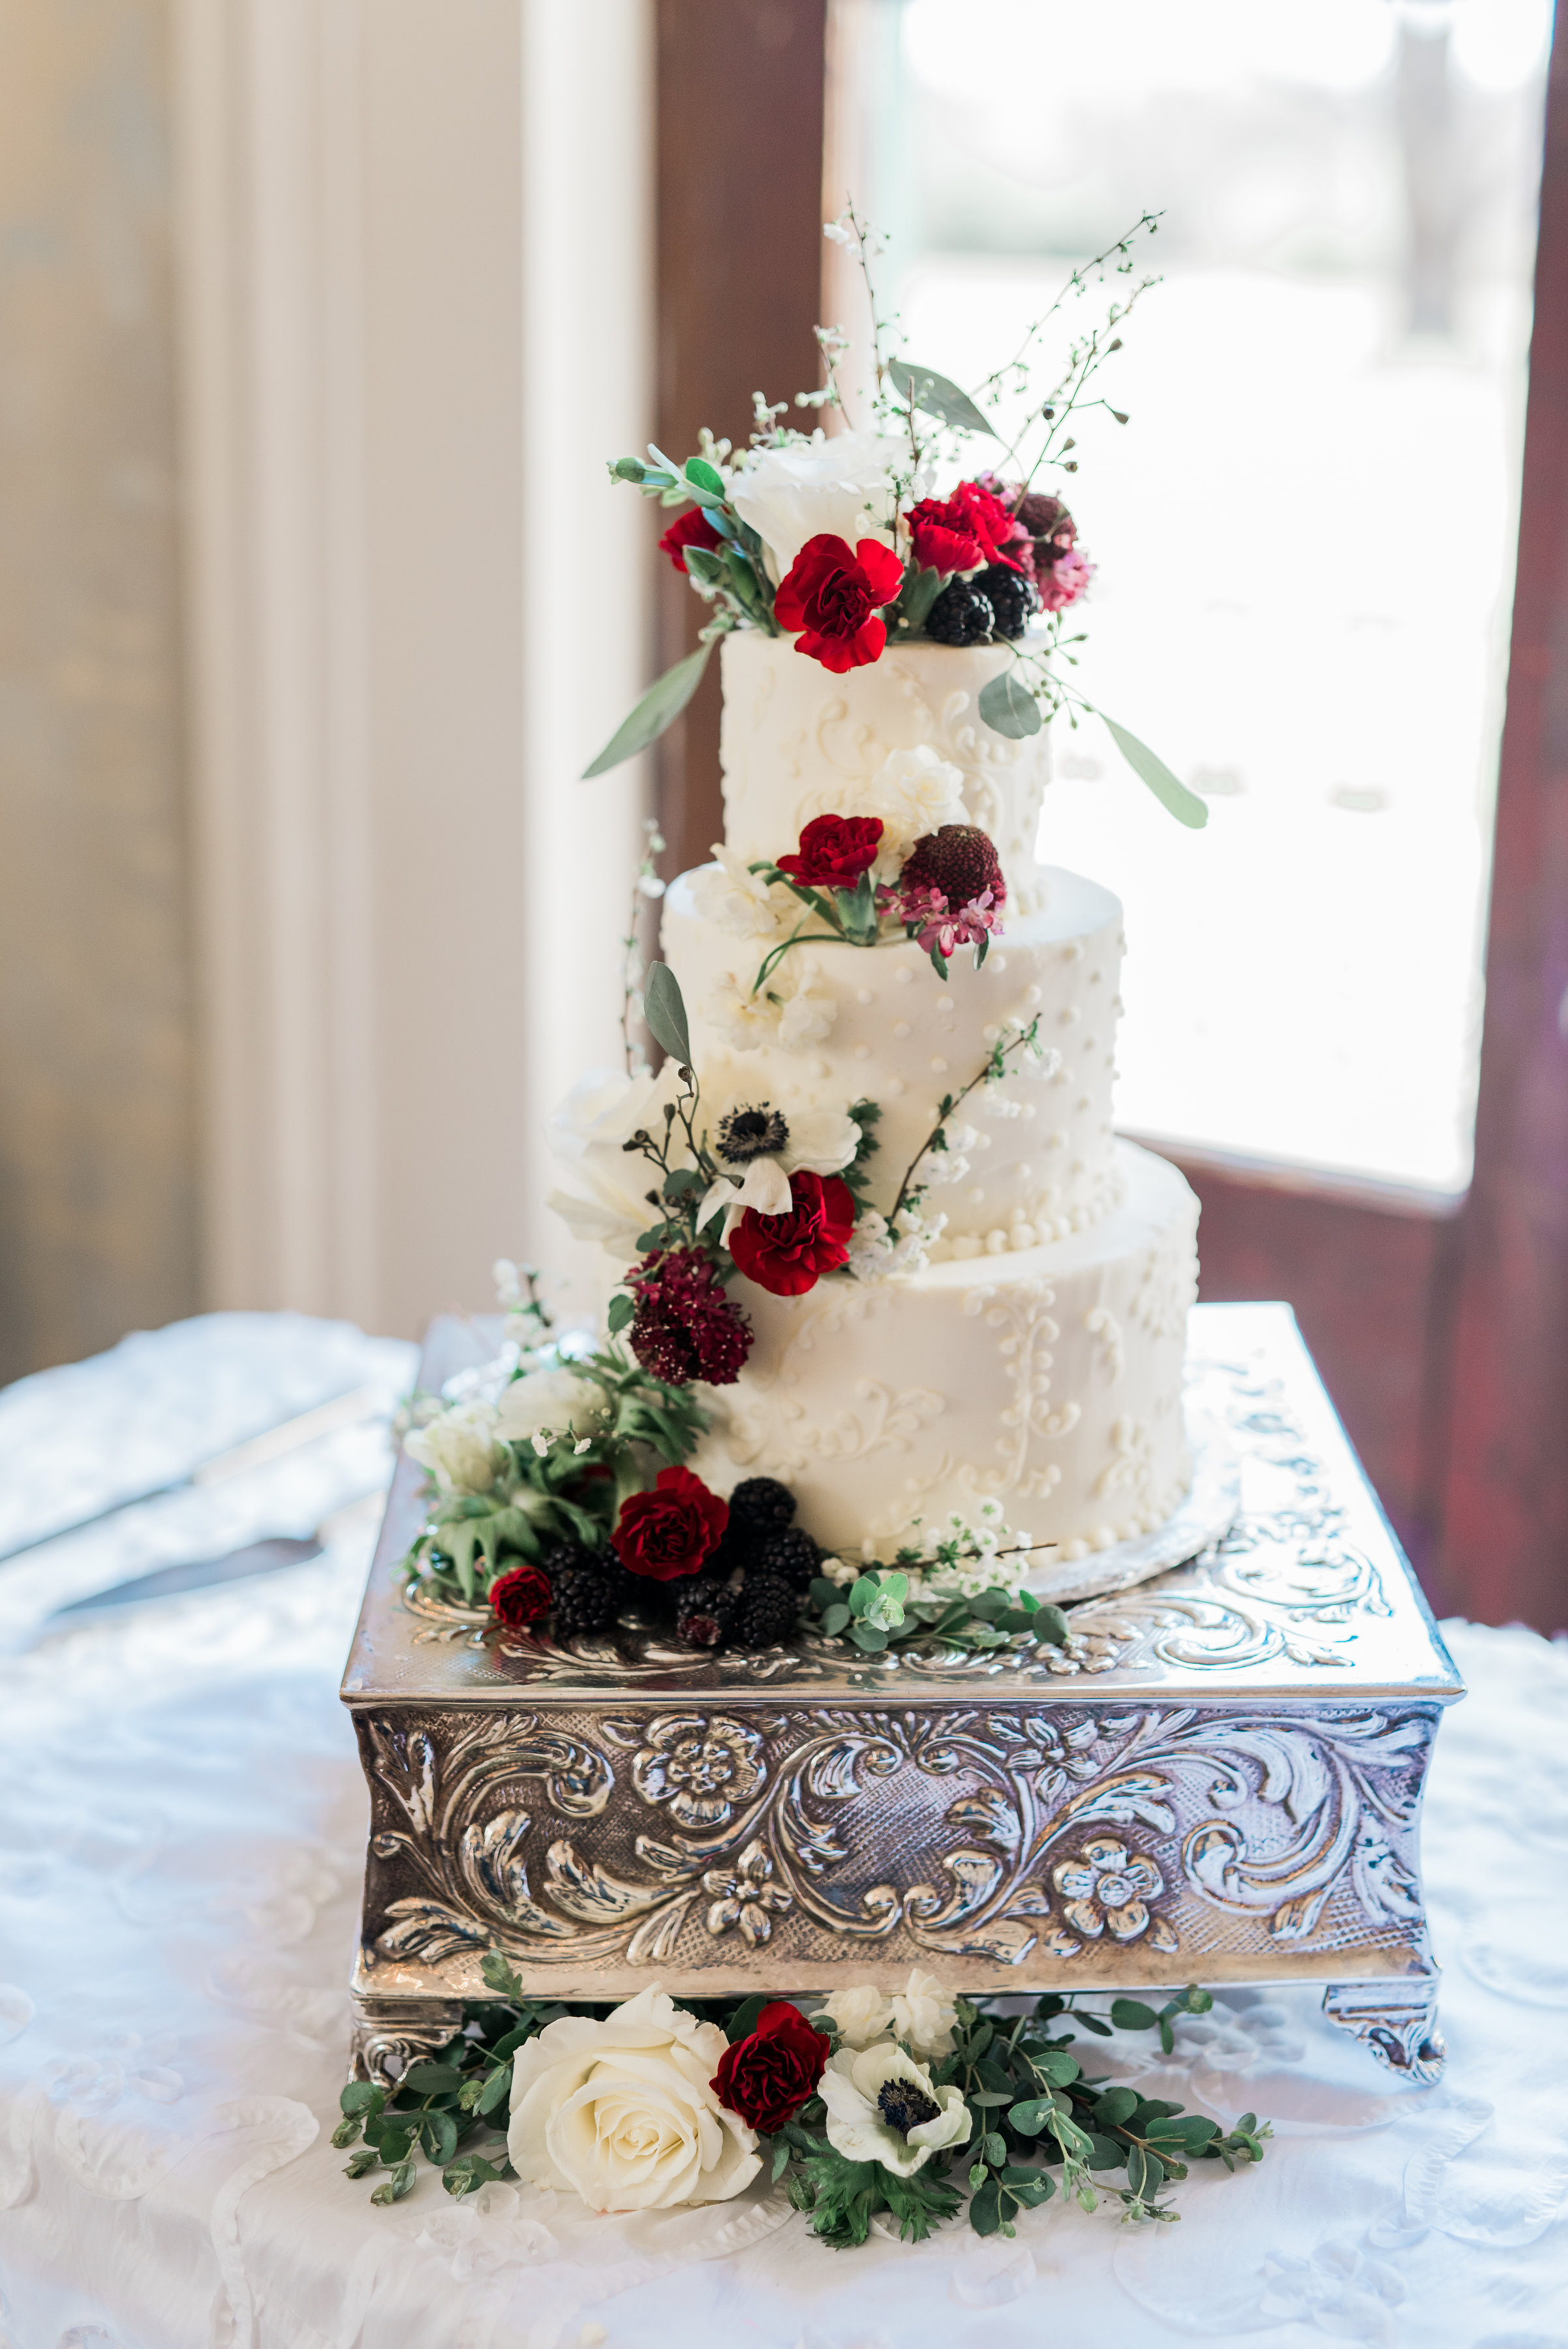 Detailed Cake with Floral and Fruit.jpg